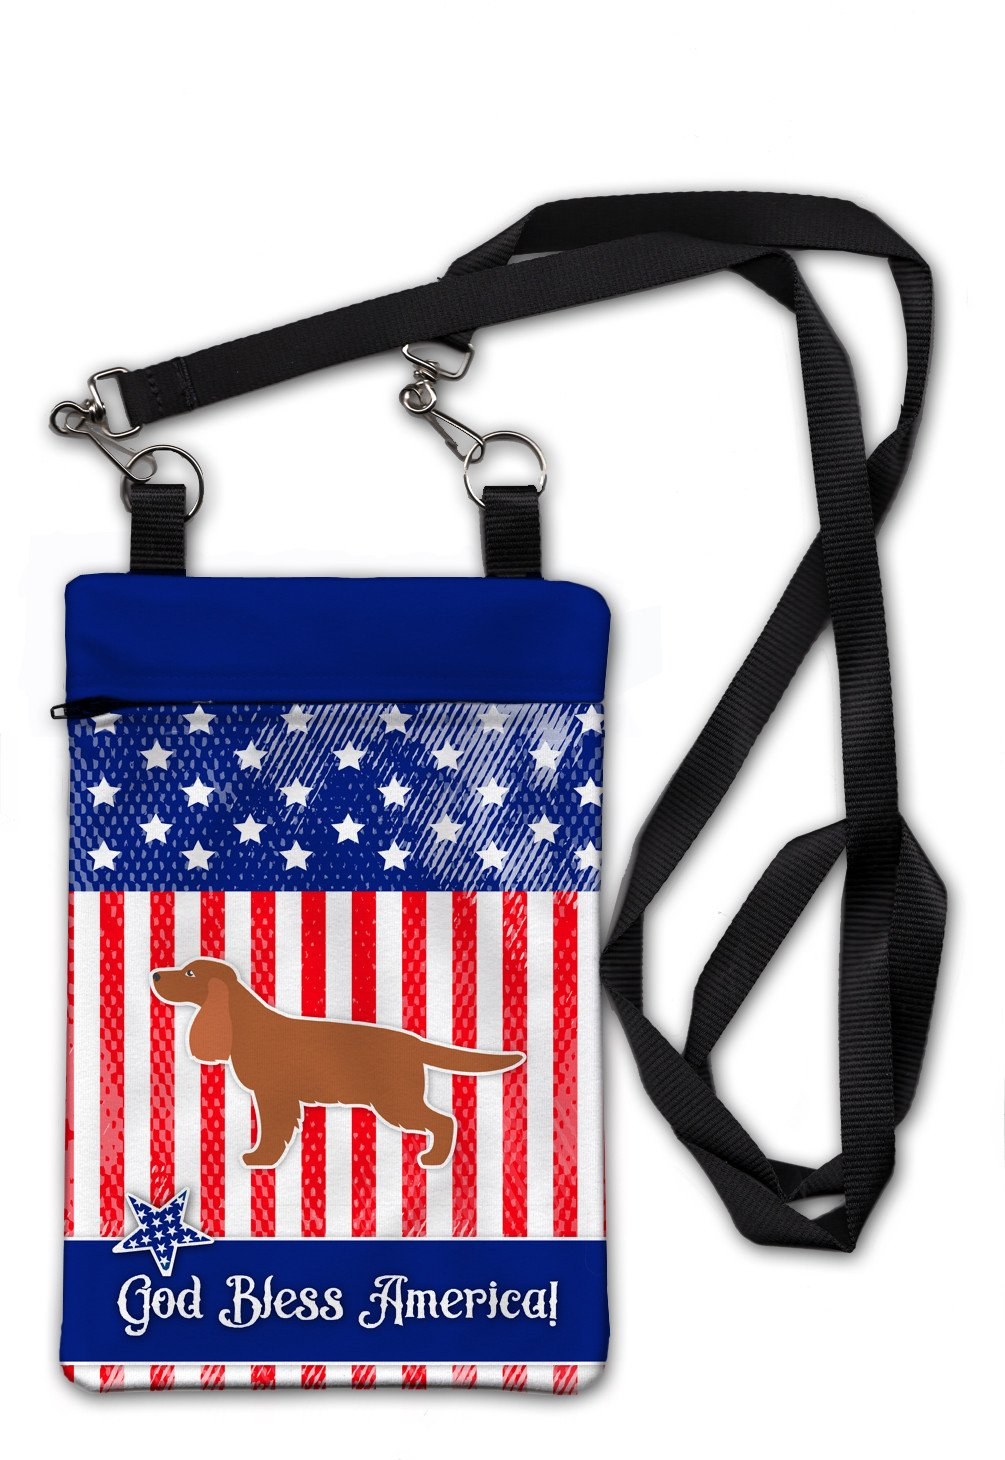 USA Patriotic English Cocker Spaniel Crossbody Bag Purse BB3312OBDY by Caroline's Treasures